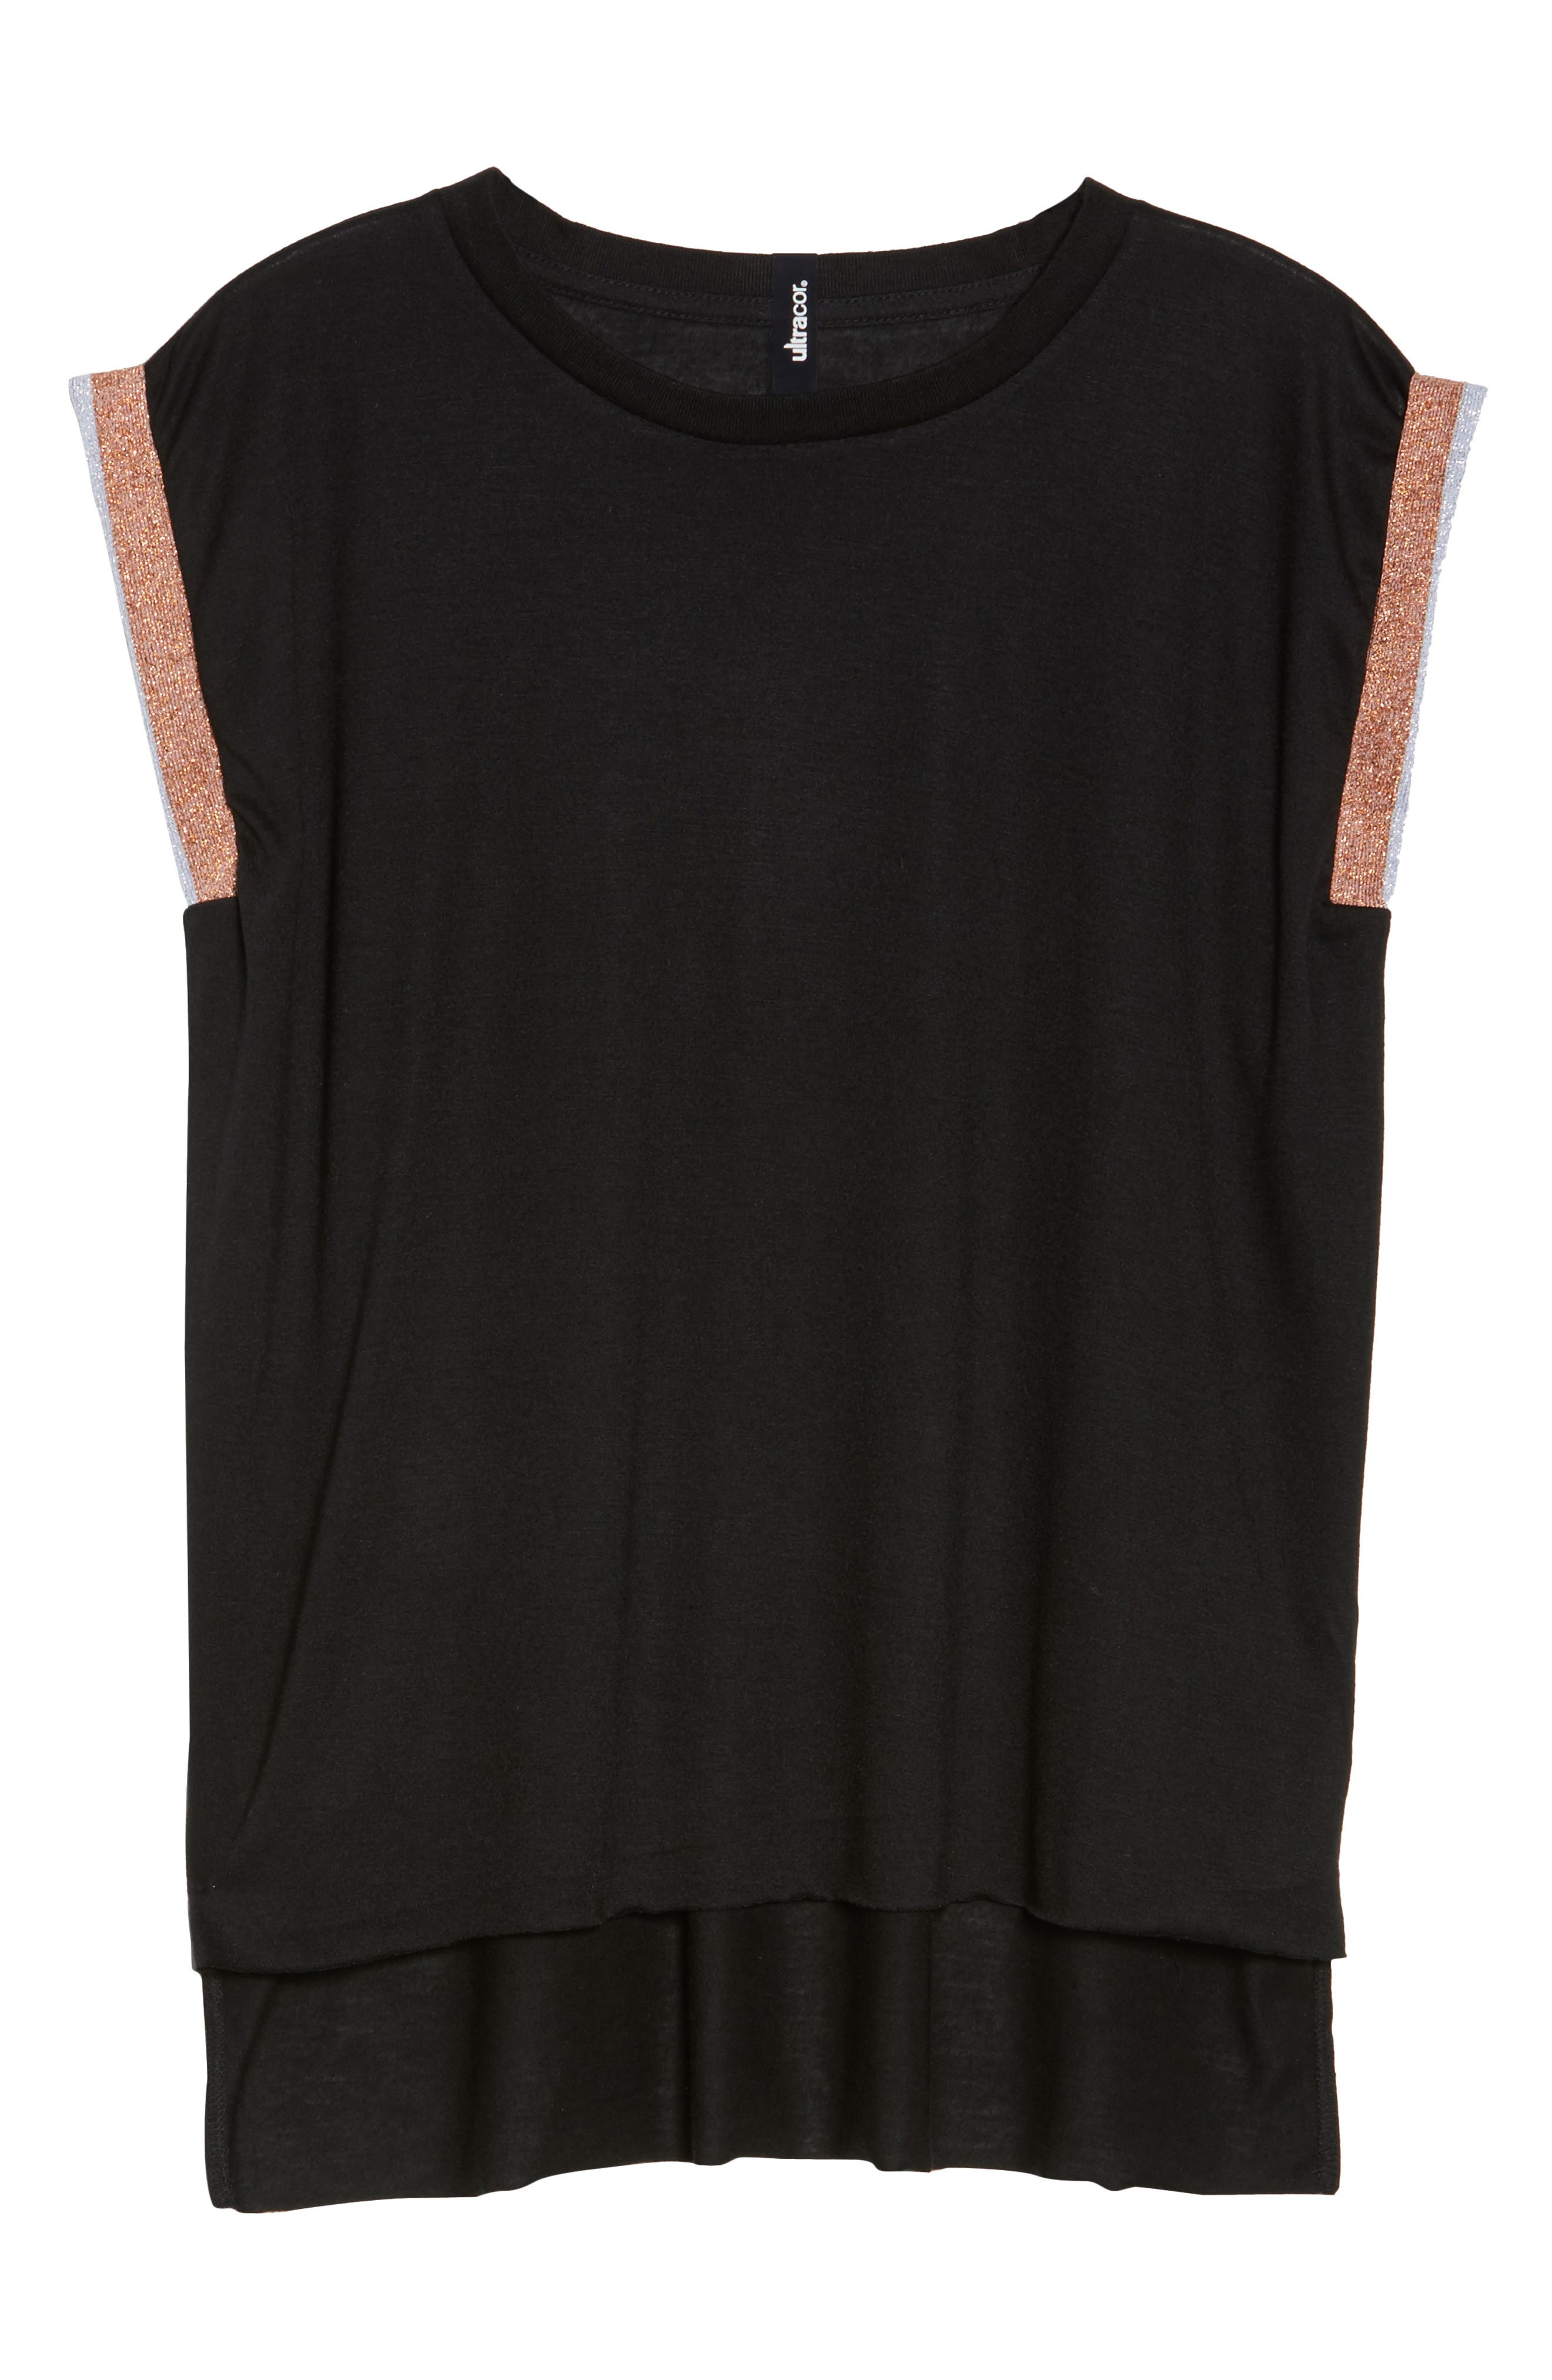 Collegiate Muscle Tee,                             Alternate thumbnail 7, color,                             Nero Rose Silver